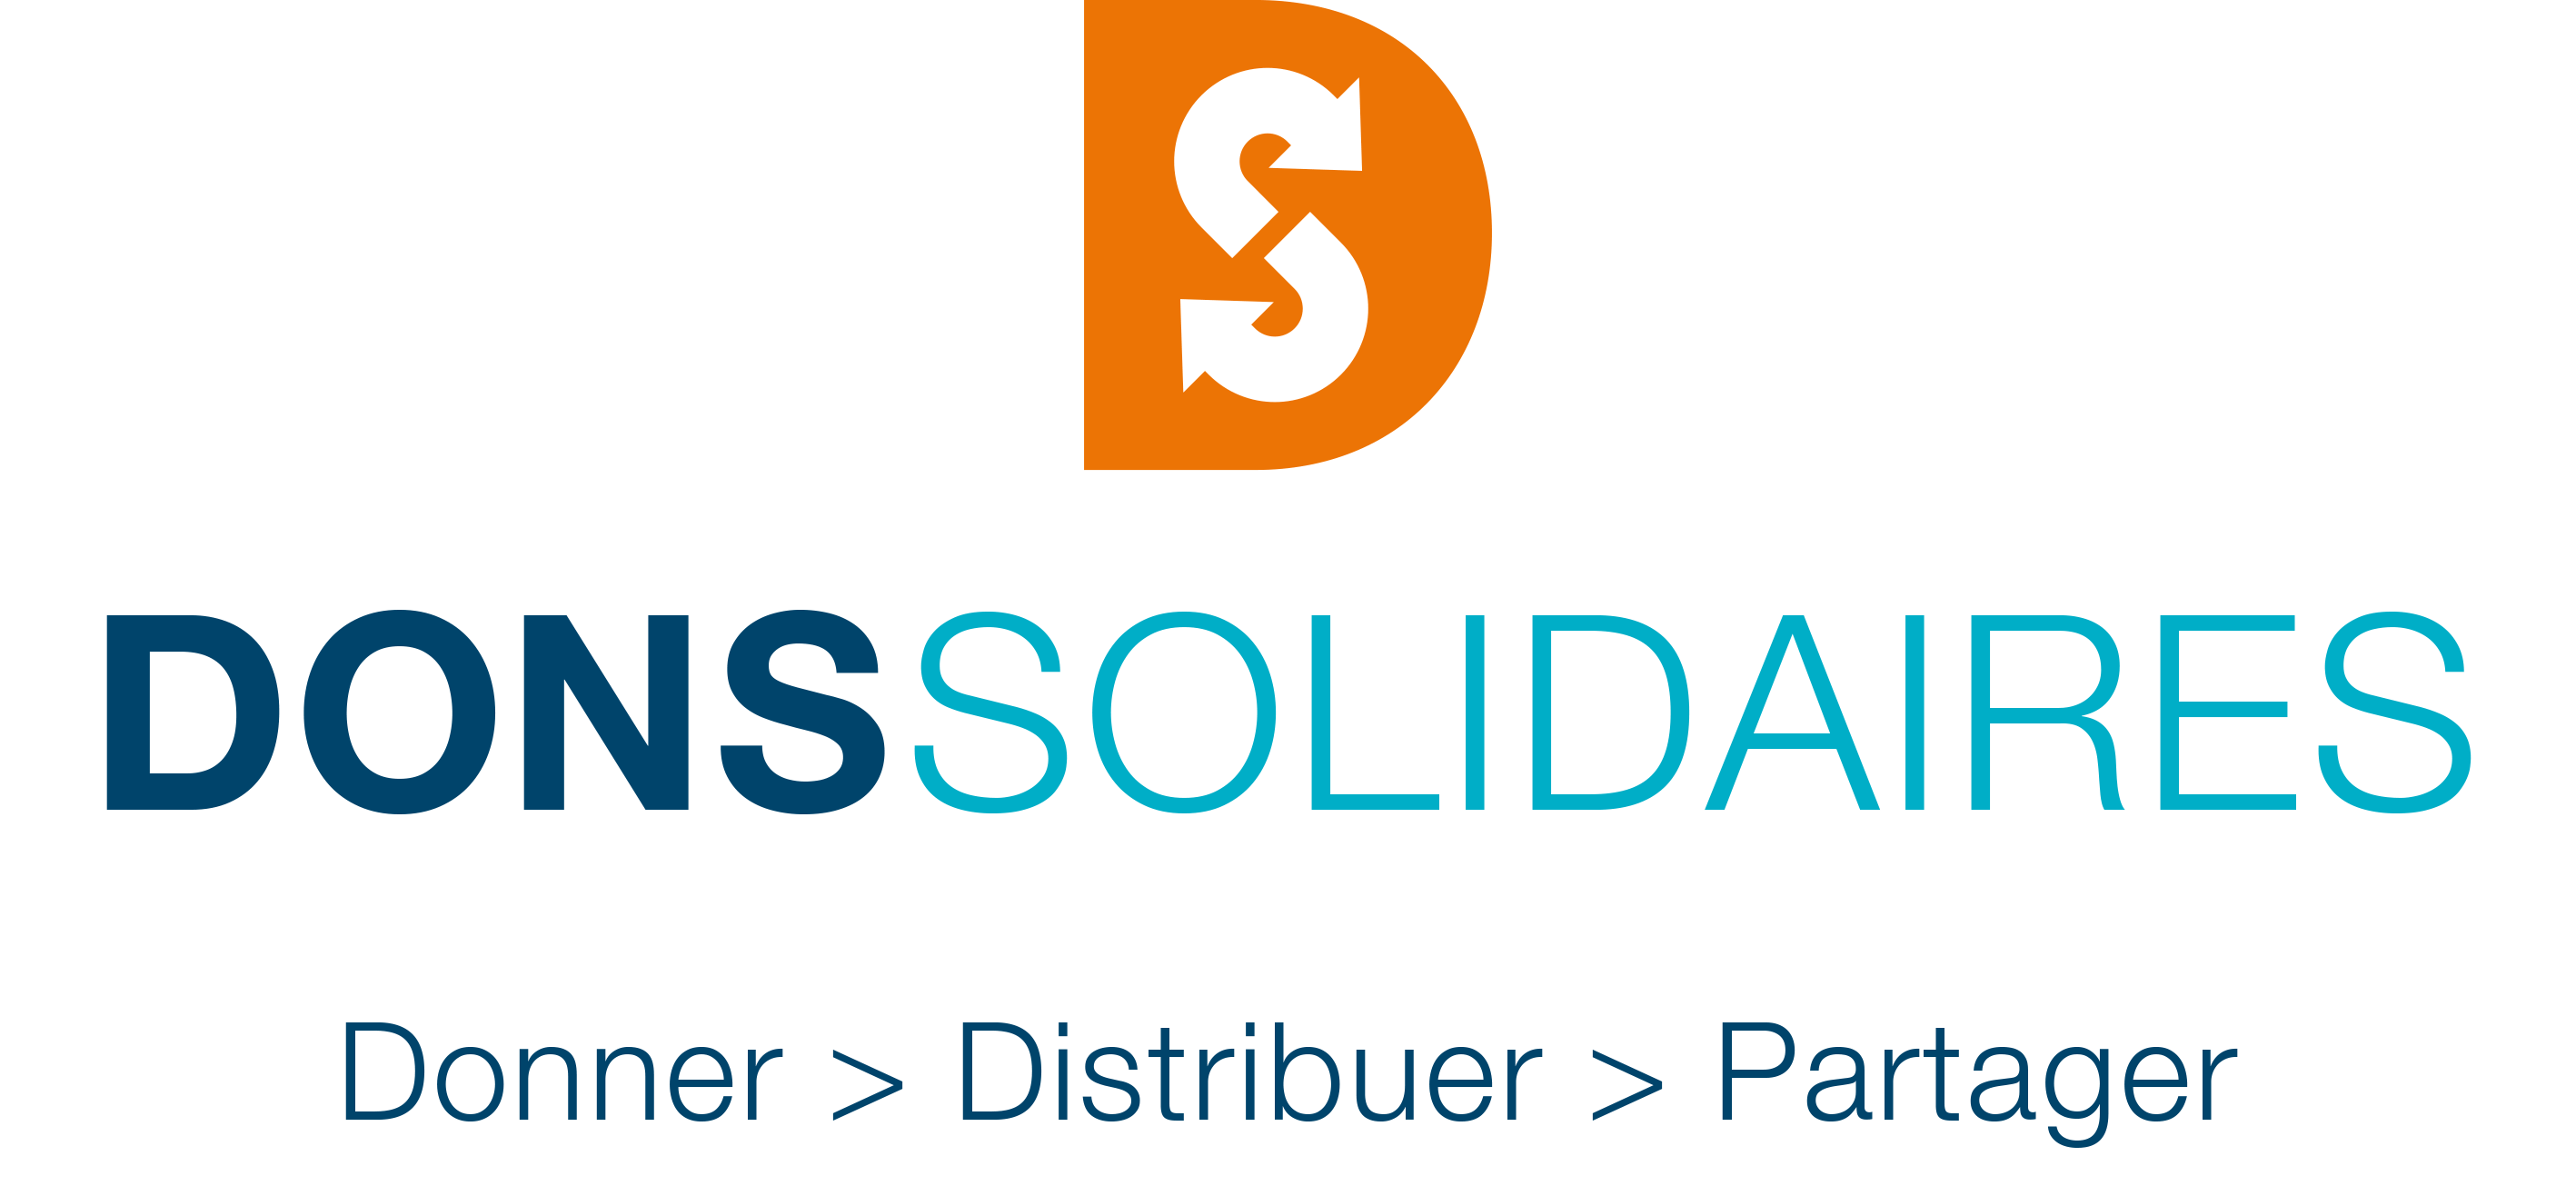 LOGO_DONS-SOLIDAIRES